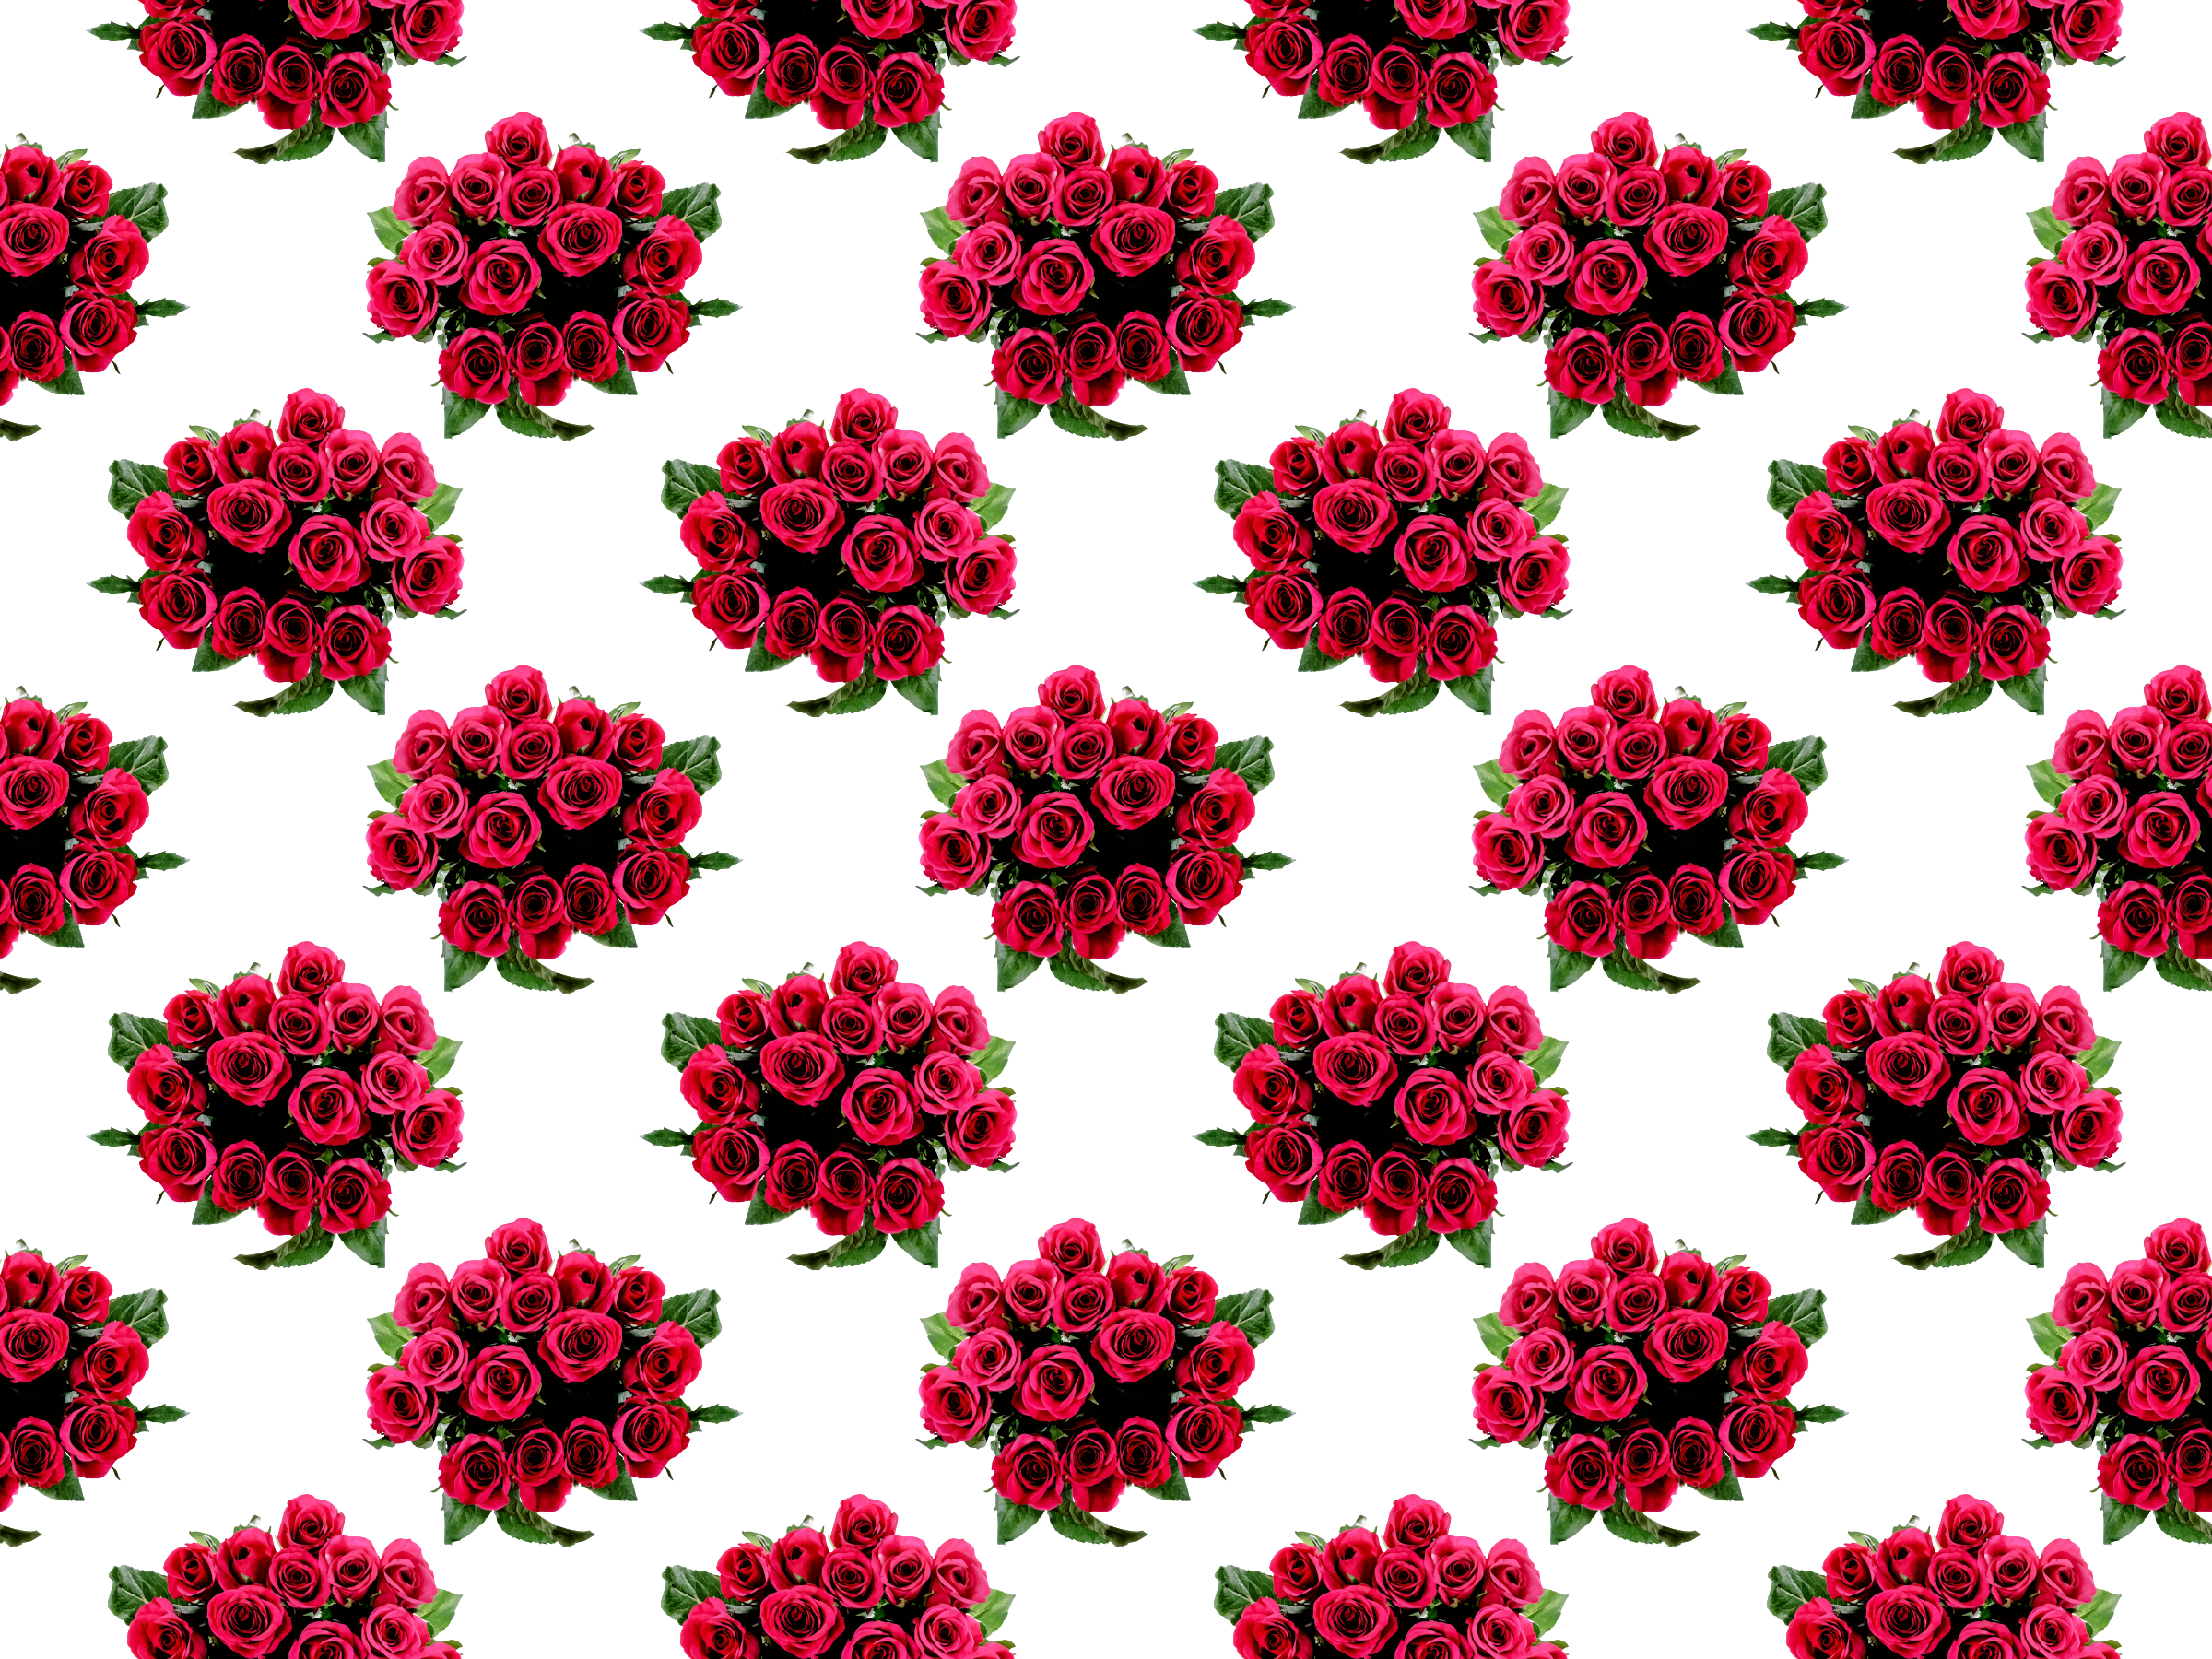 Roses pattern by Firkin